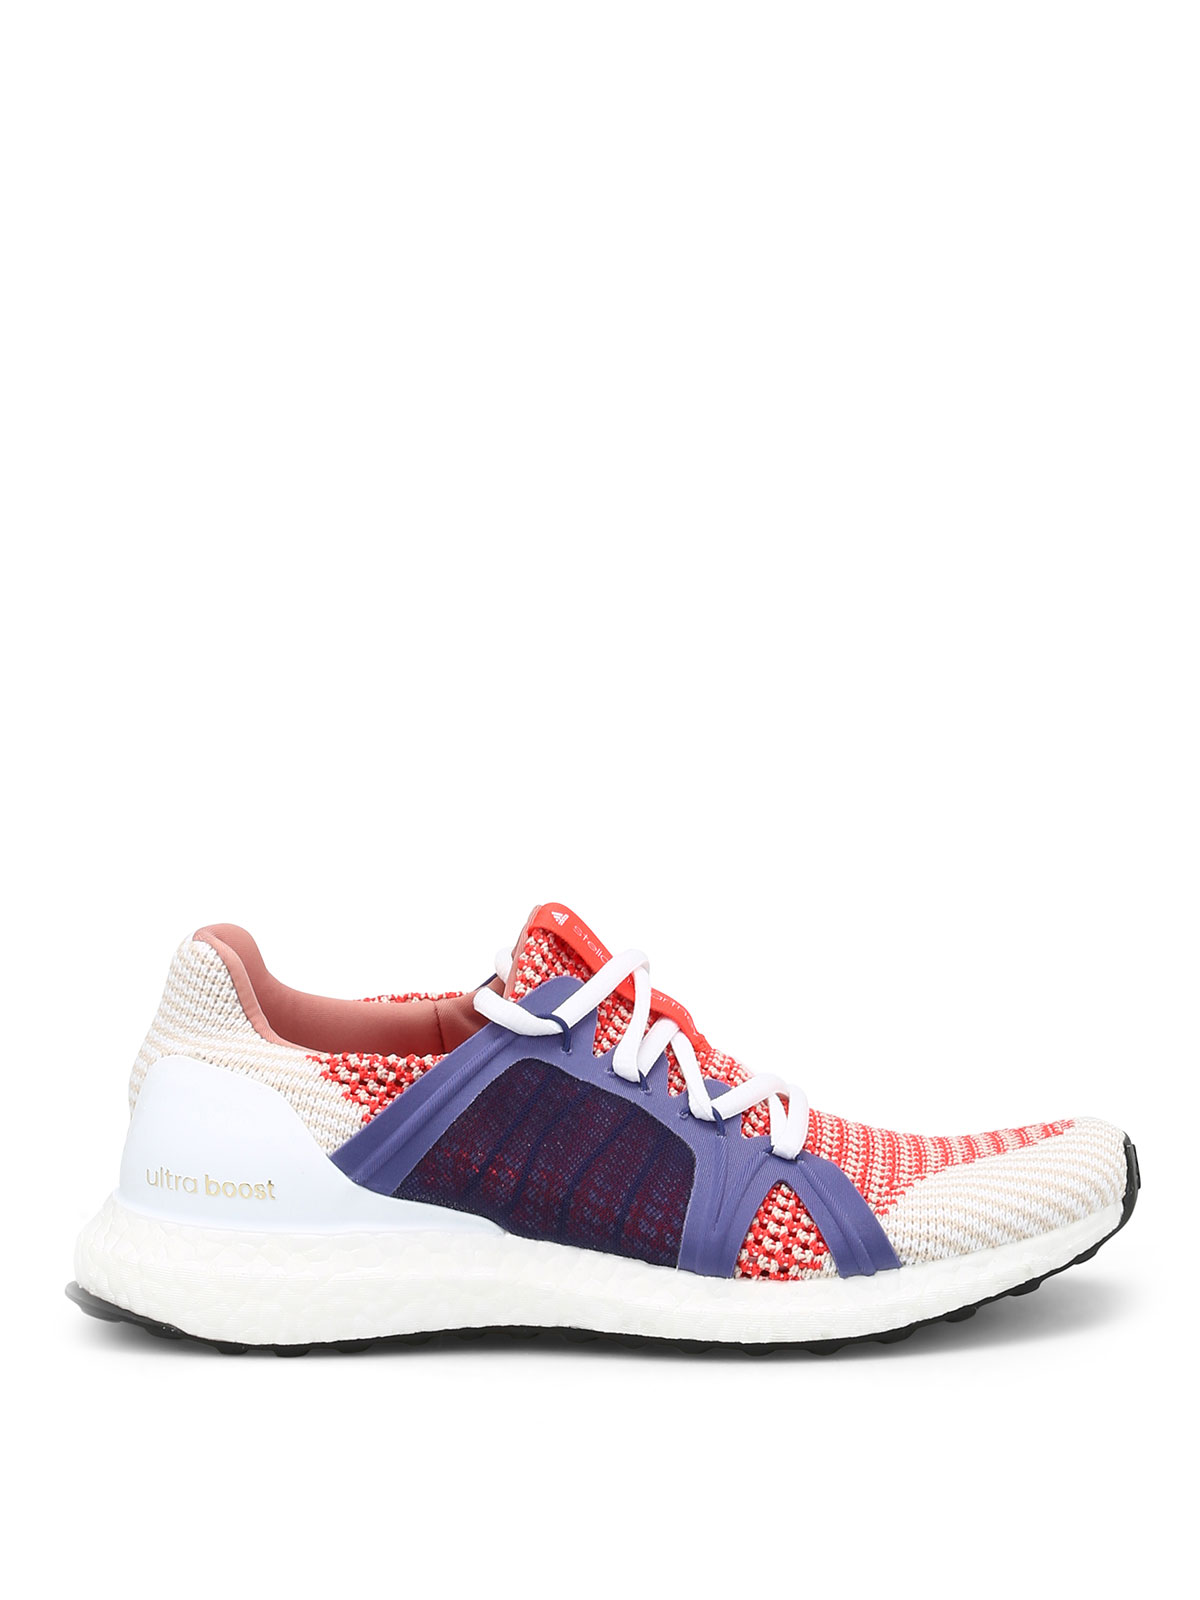 ultra boost running sneakers by adidas by stella mccartney trainers ikrix. Black Bedroom Furniture Sets. Home Design Ideas